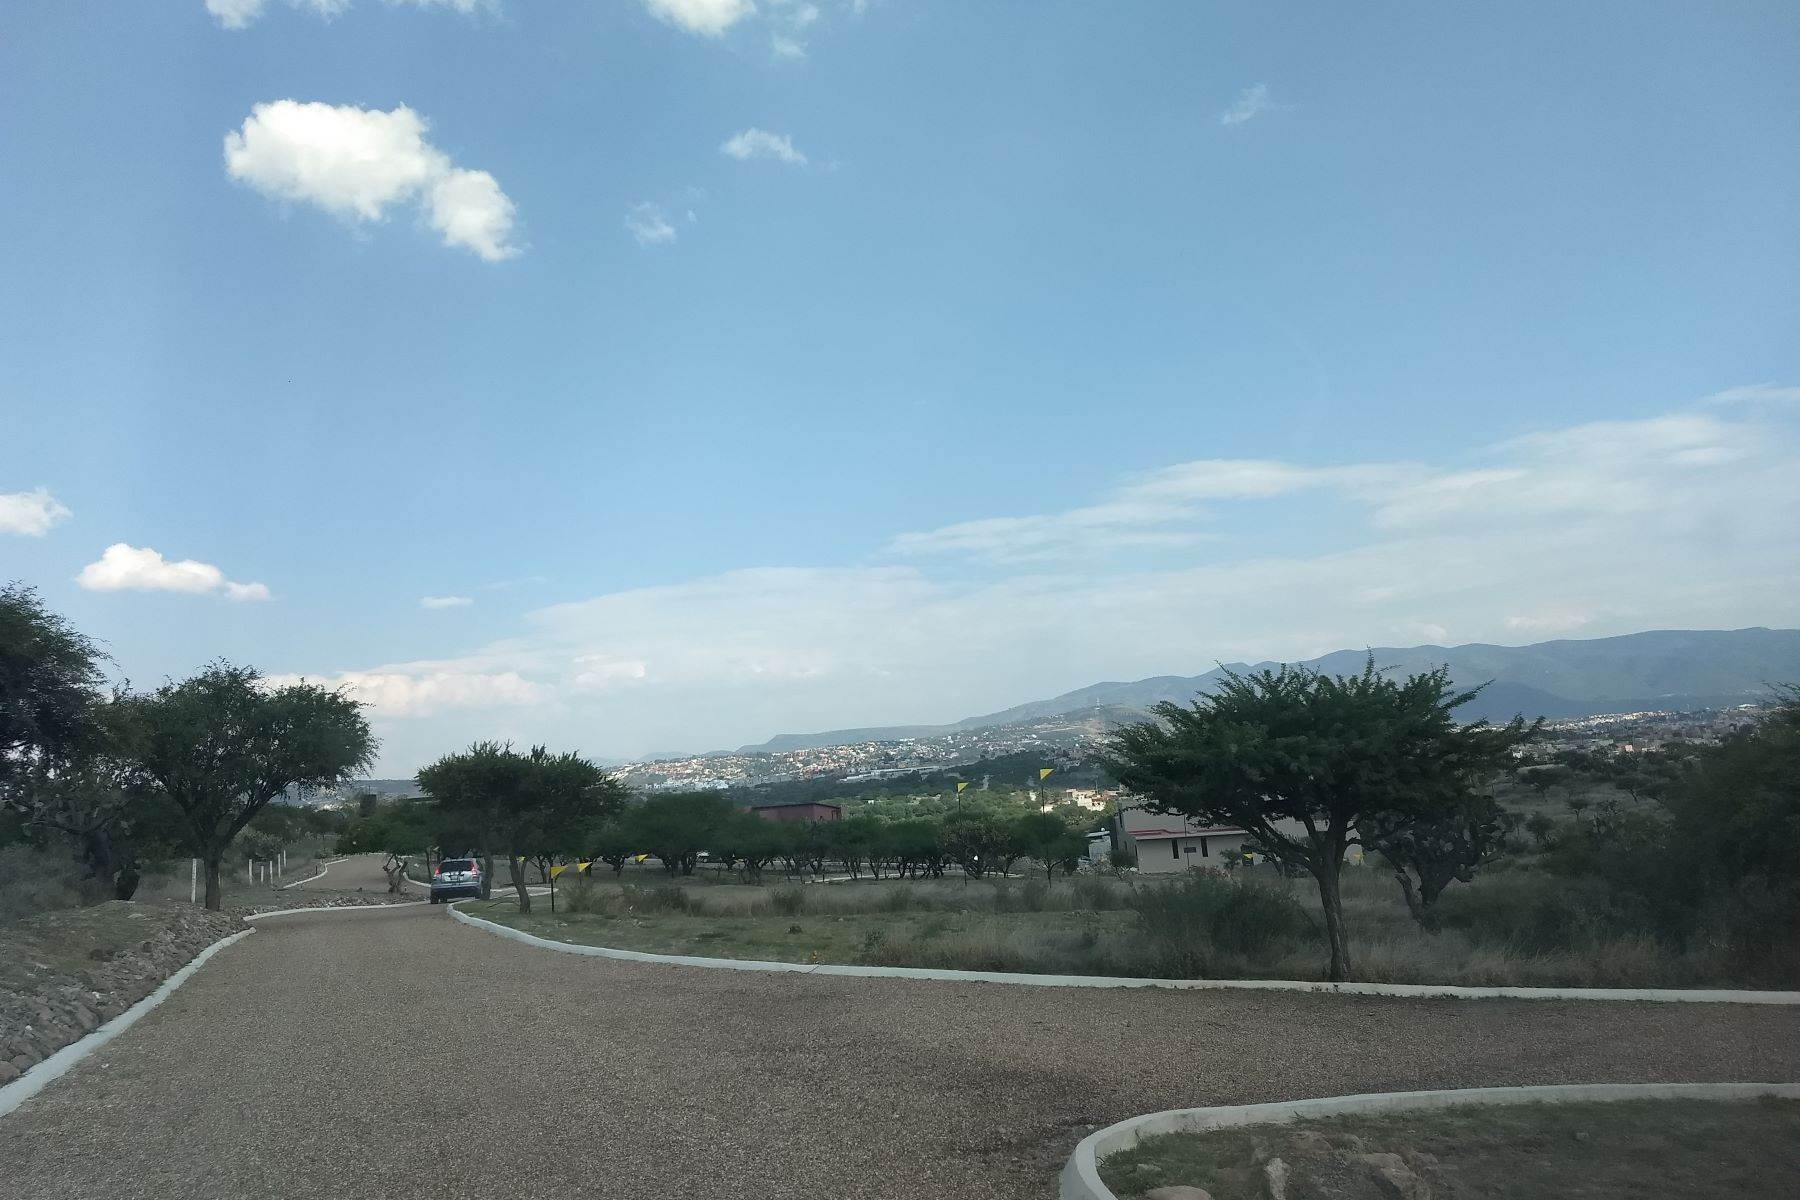 Property for Sale at Lot - Los Senderos Los Senderos Other Guanajuato, Guanajuato 37718 Mexico